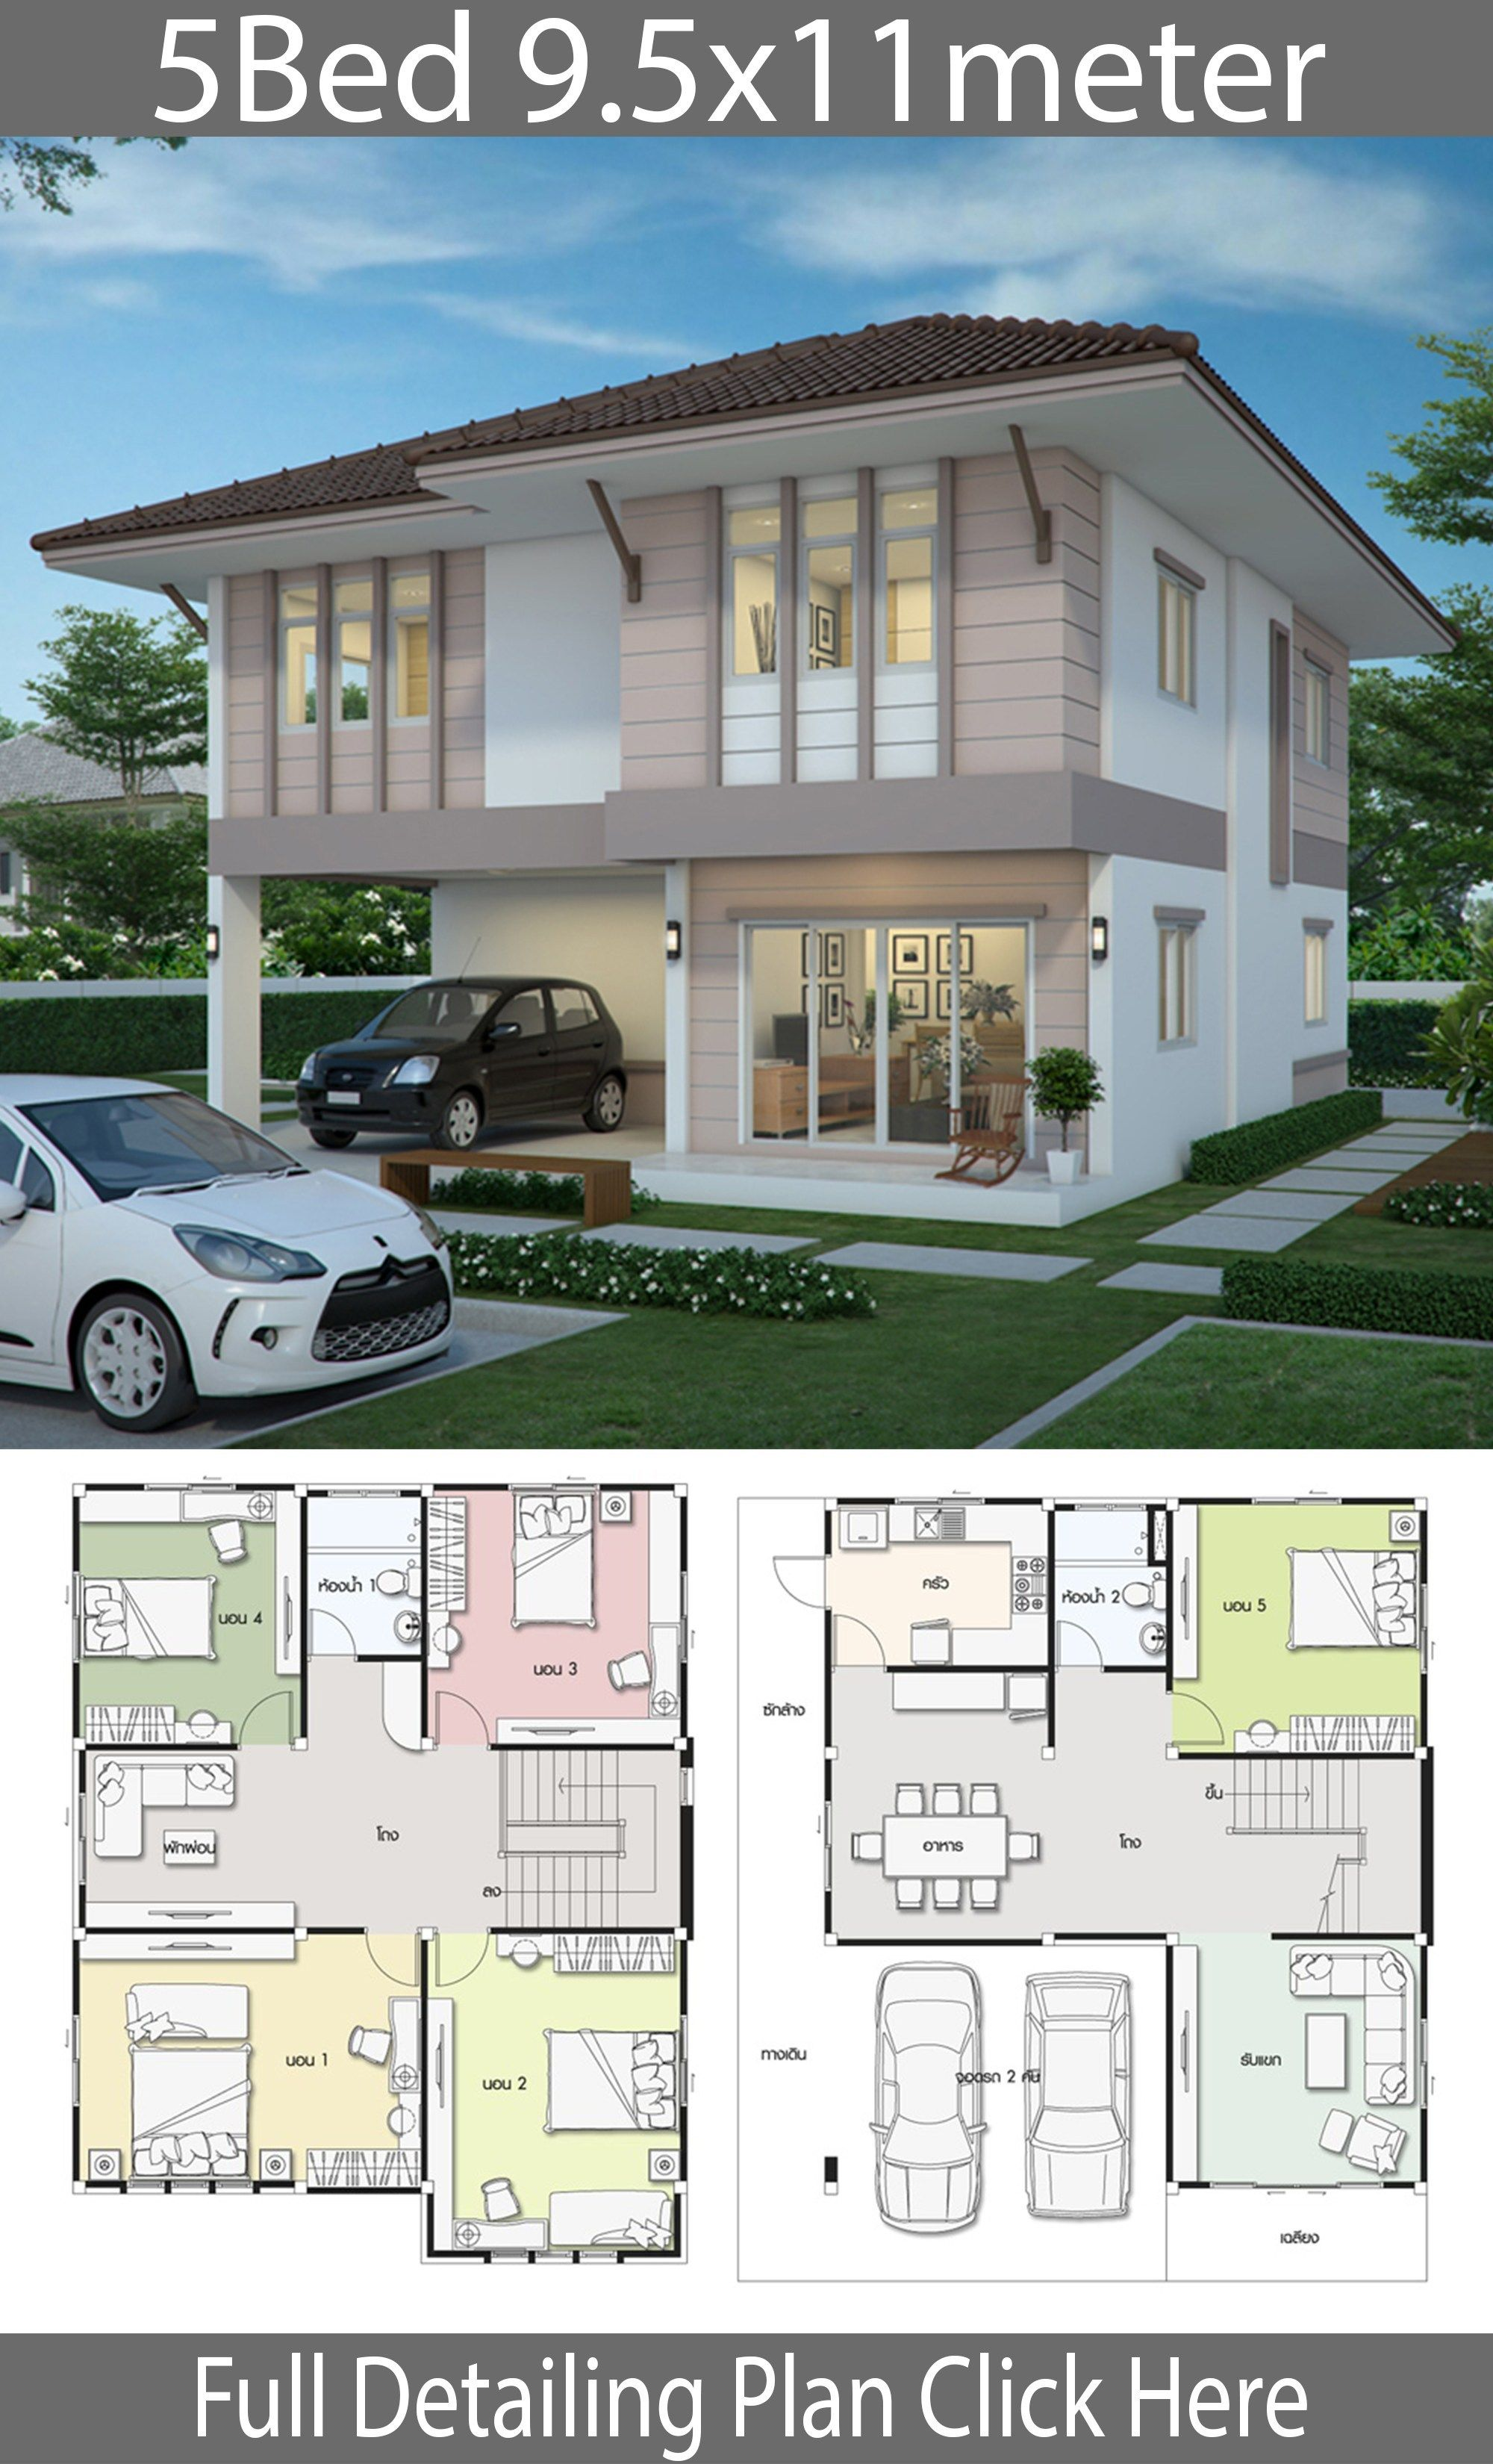 House Design Plan 9 5x11m With 5 Bedrooms Home Design With Plan Bungalow House Plans Model House Plan House Plans